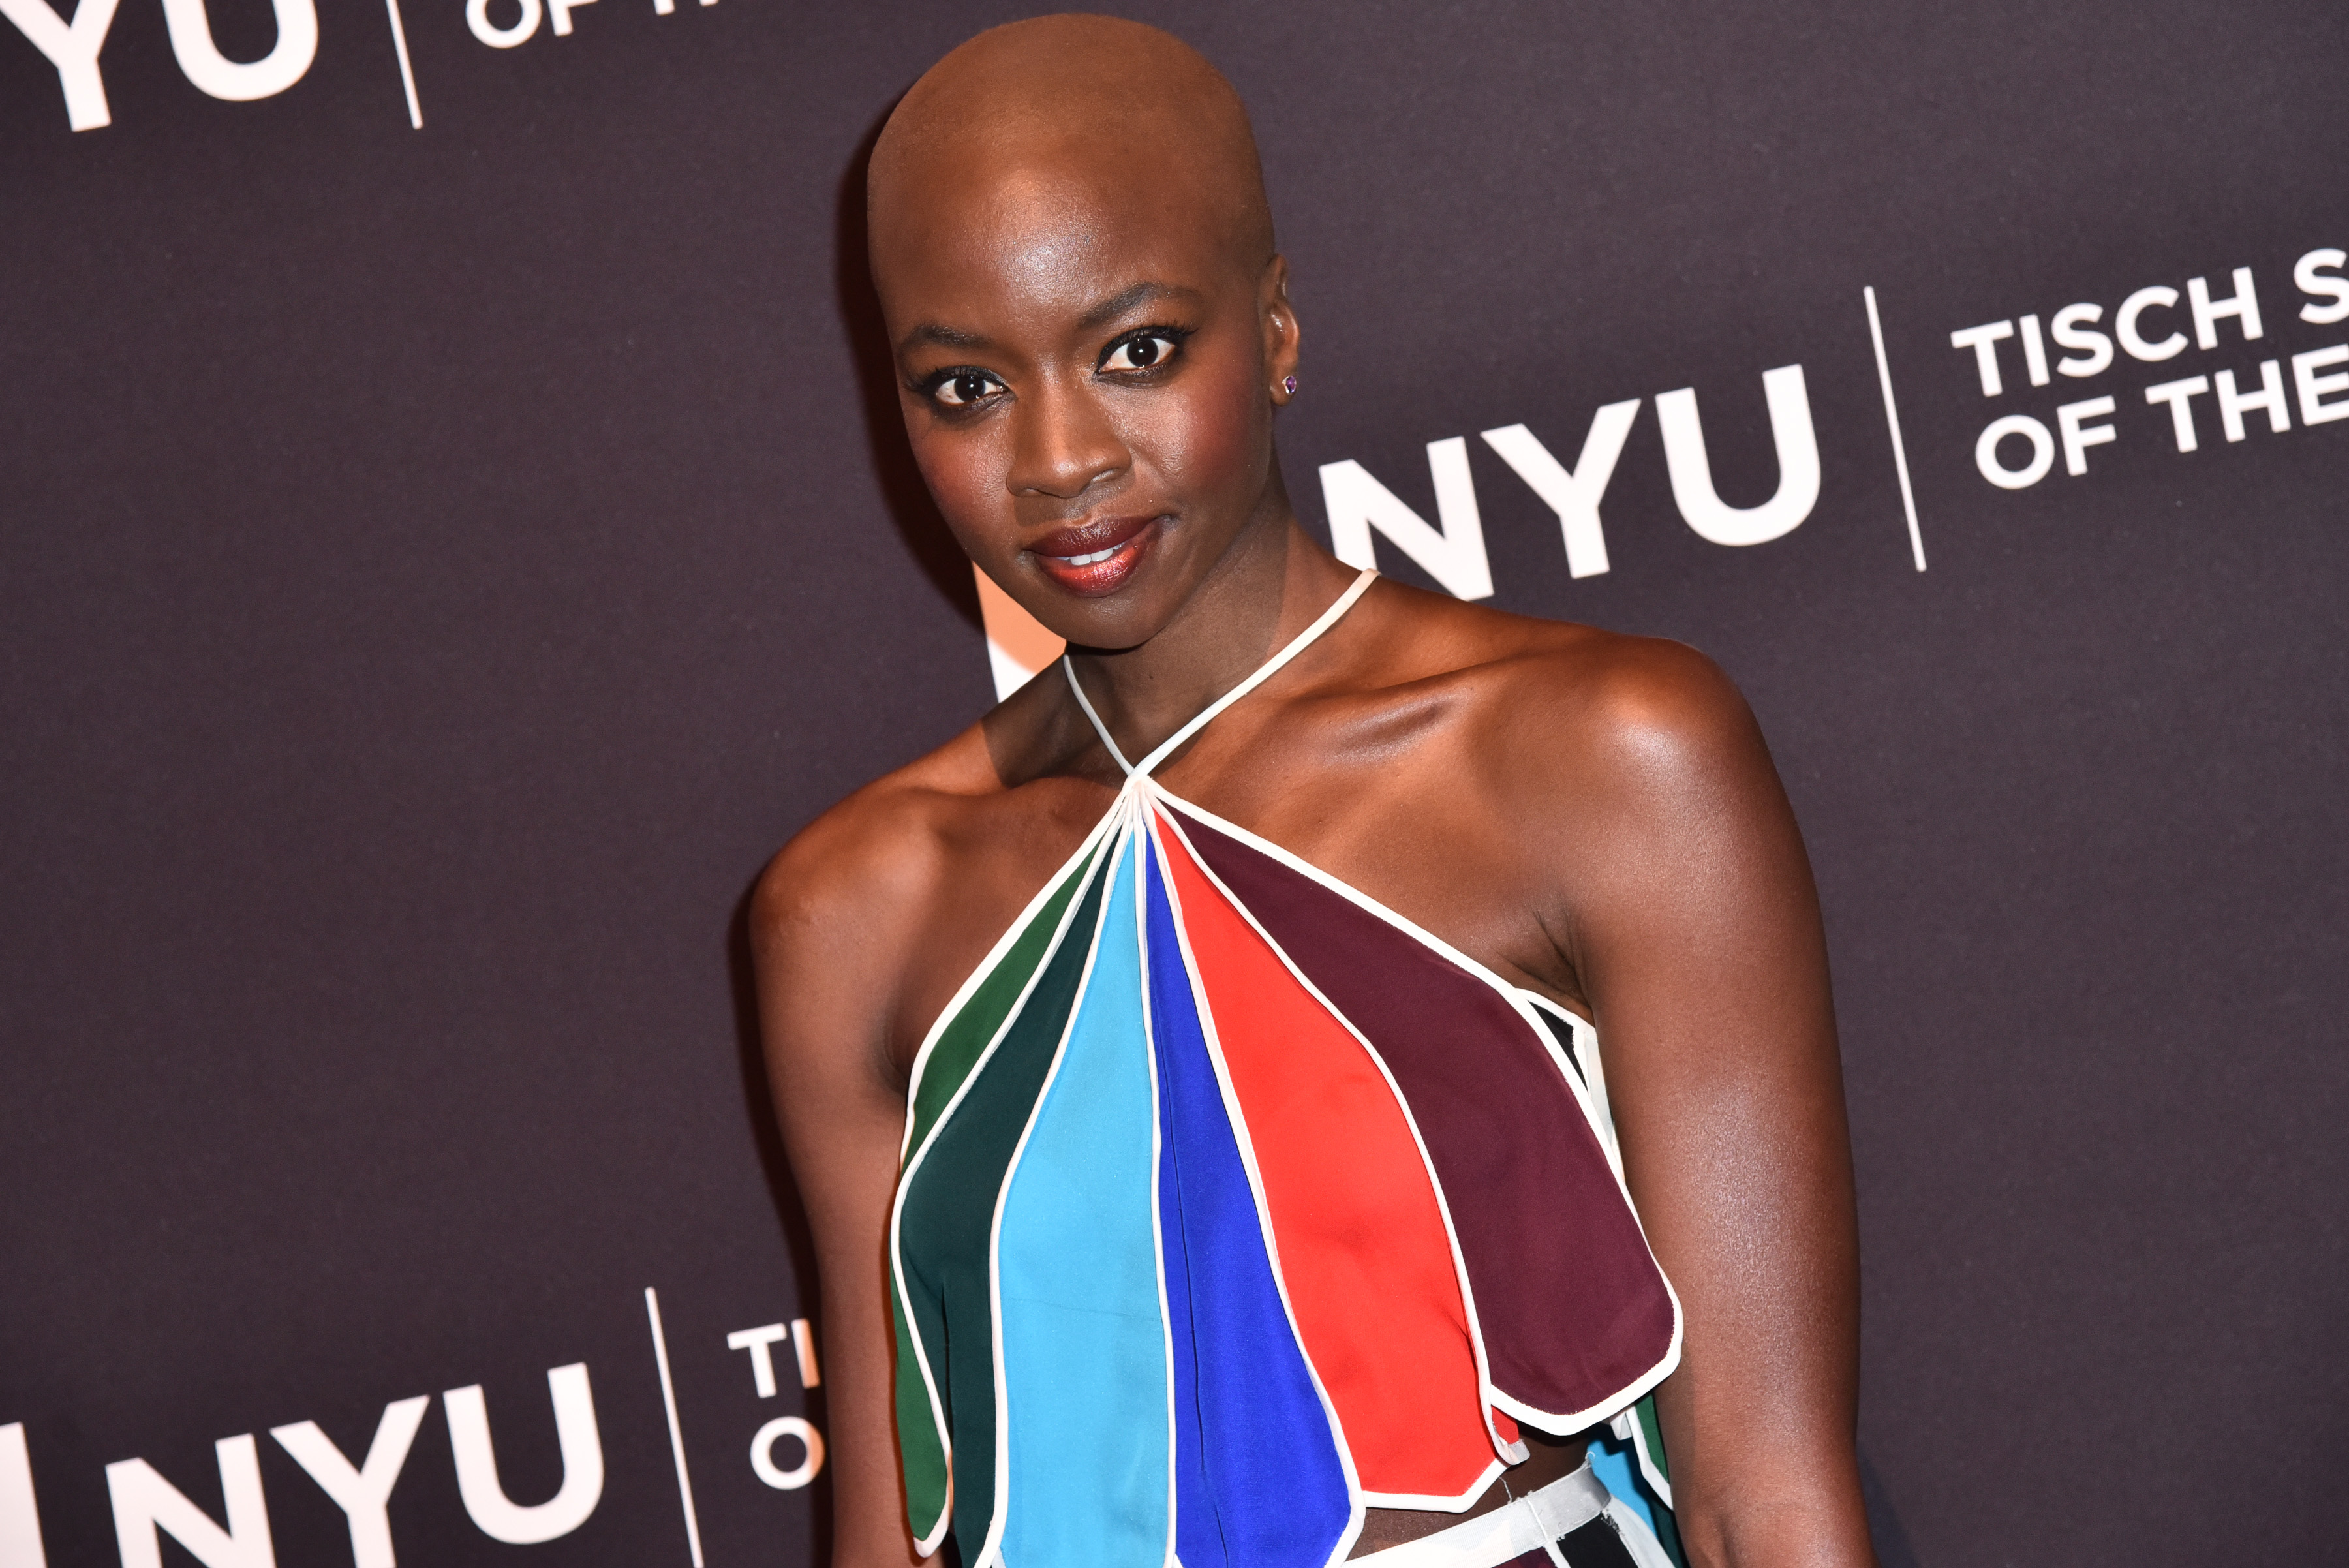 Black panther danai gurira officially completes filming for Tisch schmal